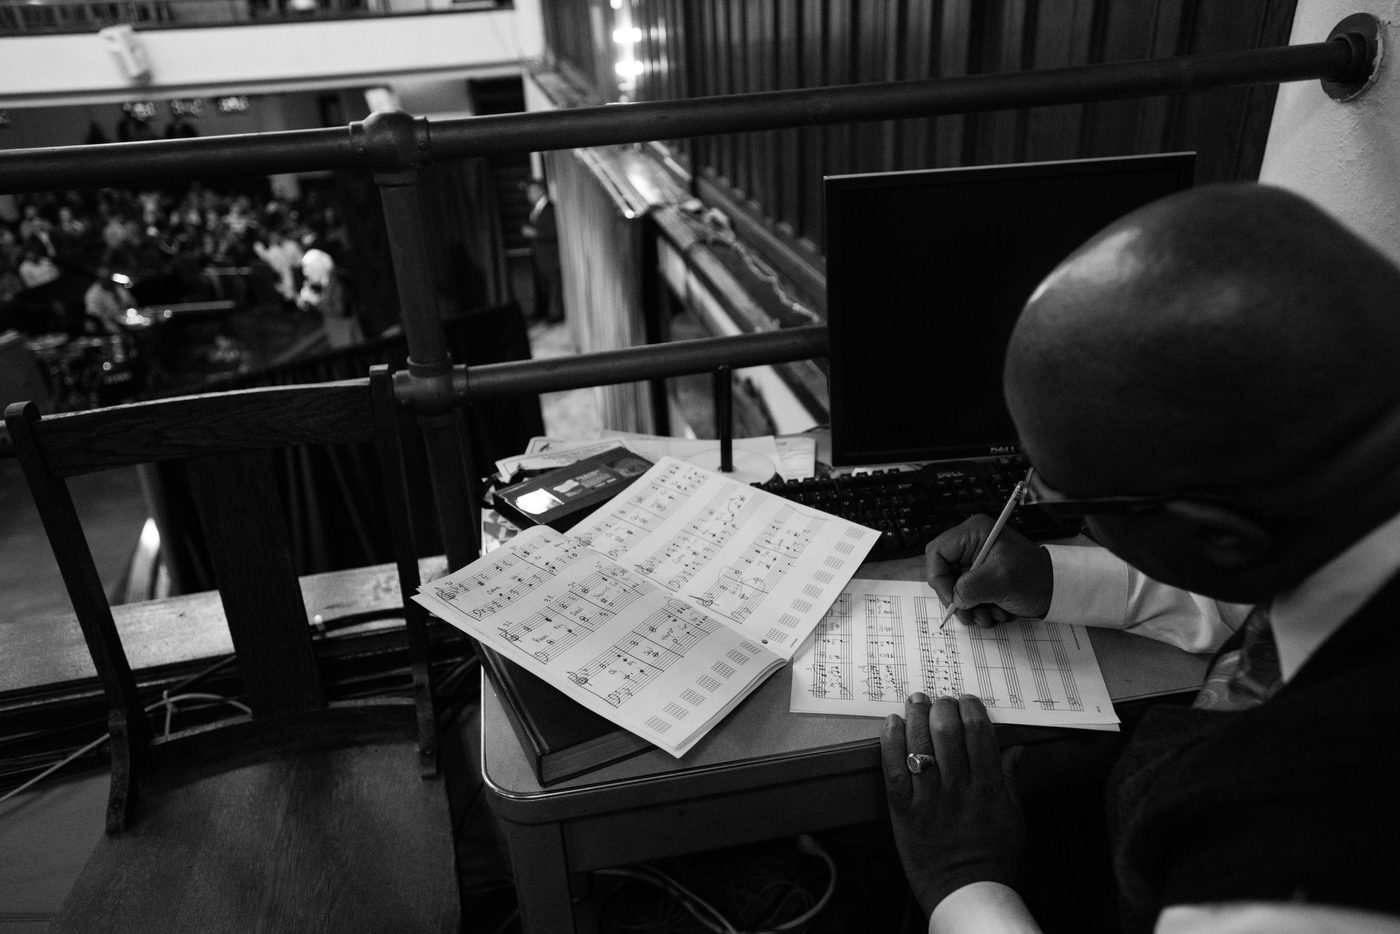 Theodore Thomas Jr., organist at Tindley Temple United Methodist Church, does arrangements as Democratic presidential candidate Bernie Sanders speaks at an African American Community Conversation town hall event in Philadelphia, Pennsylvania on April 6.